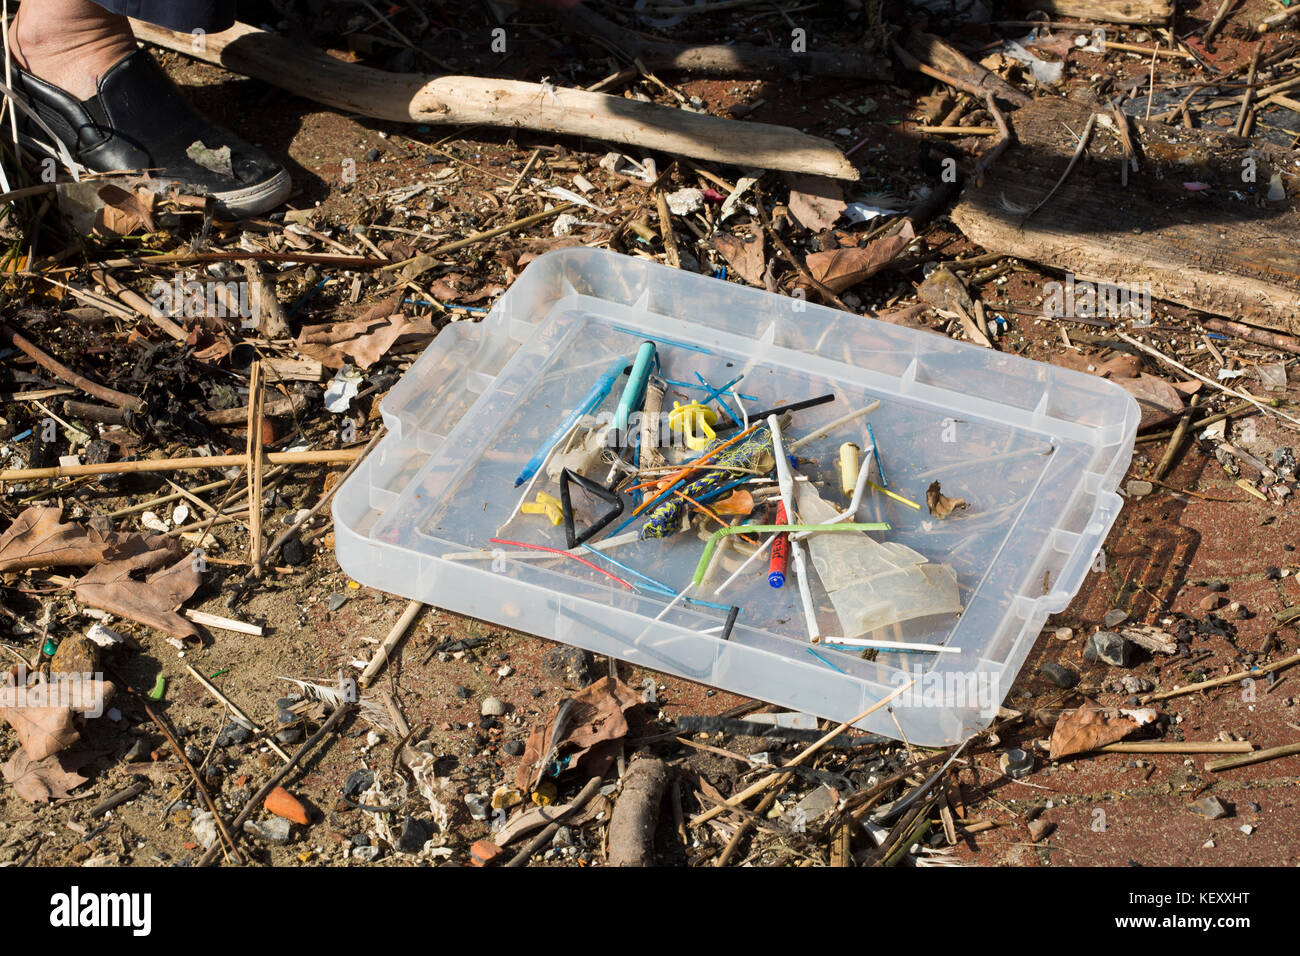 Selection of small plastic waste inc straws and microplastics. Plastic pollution in our rivers and seas is being - Stock Image